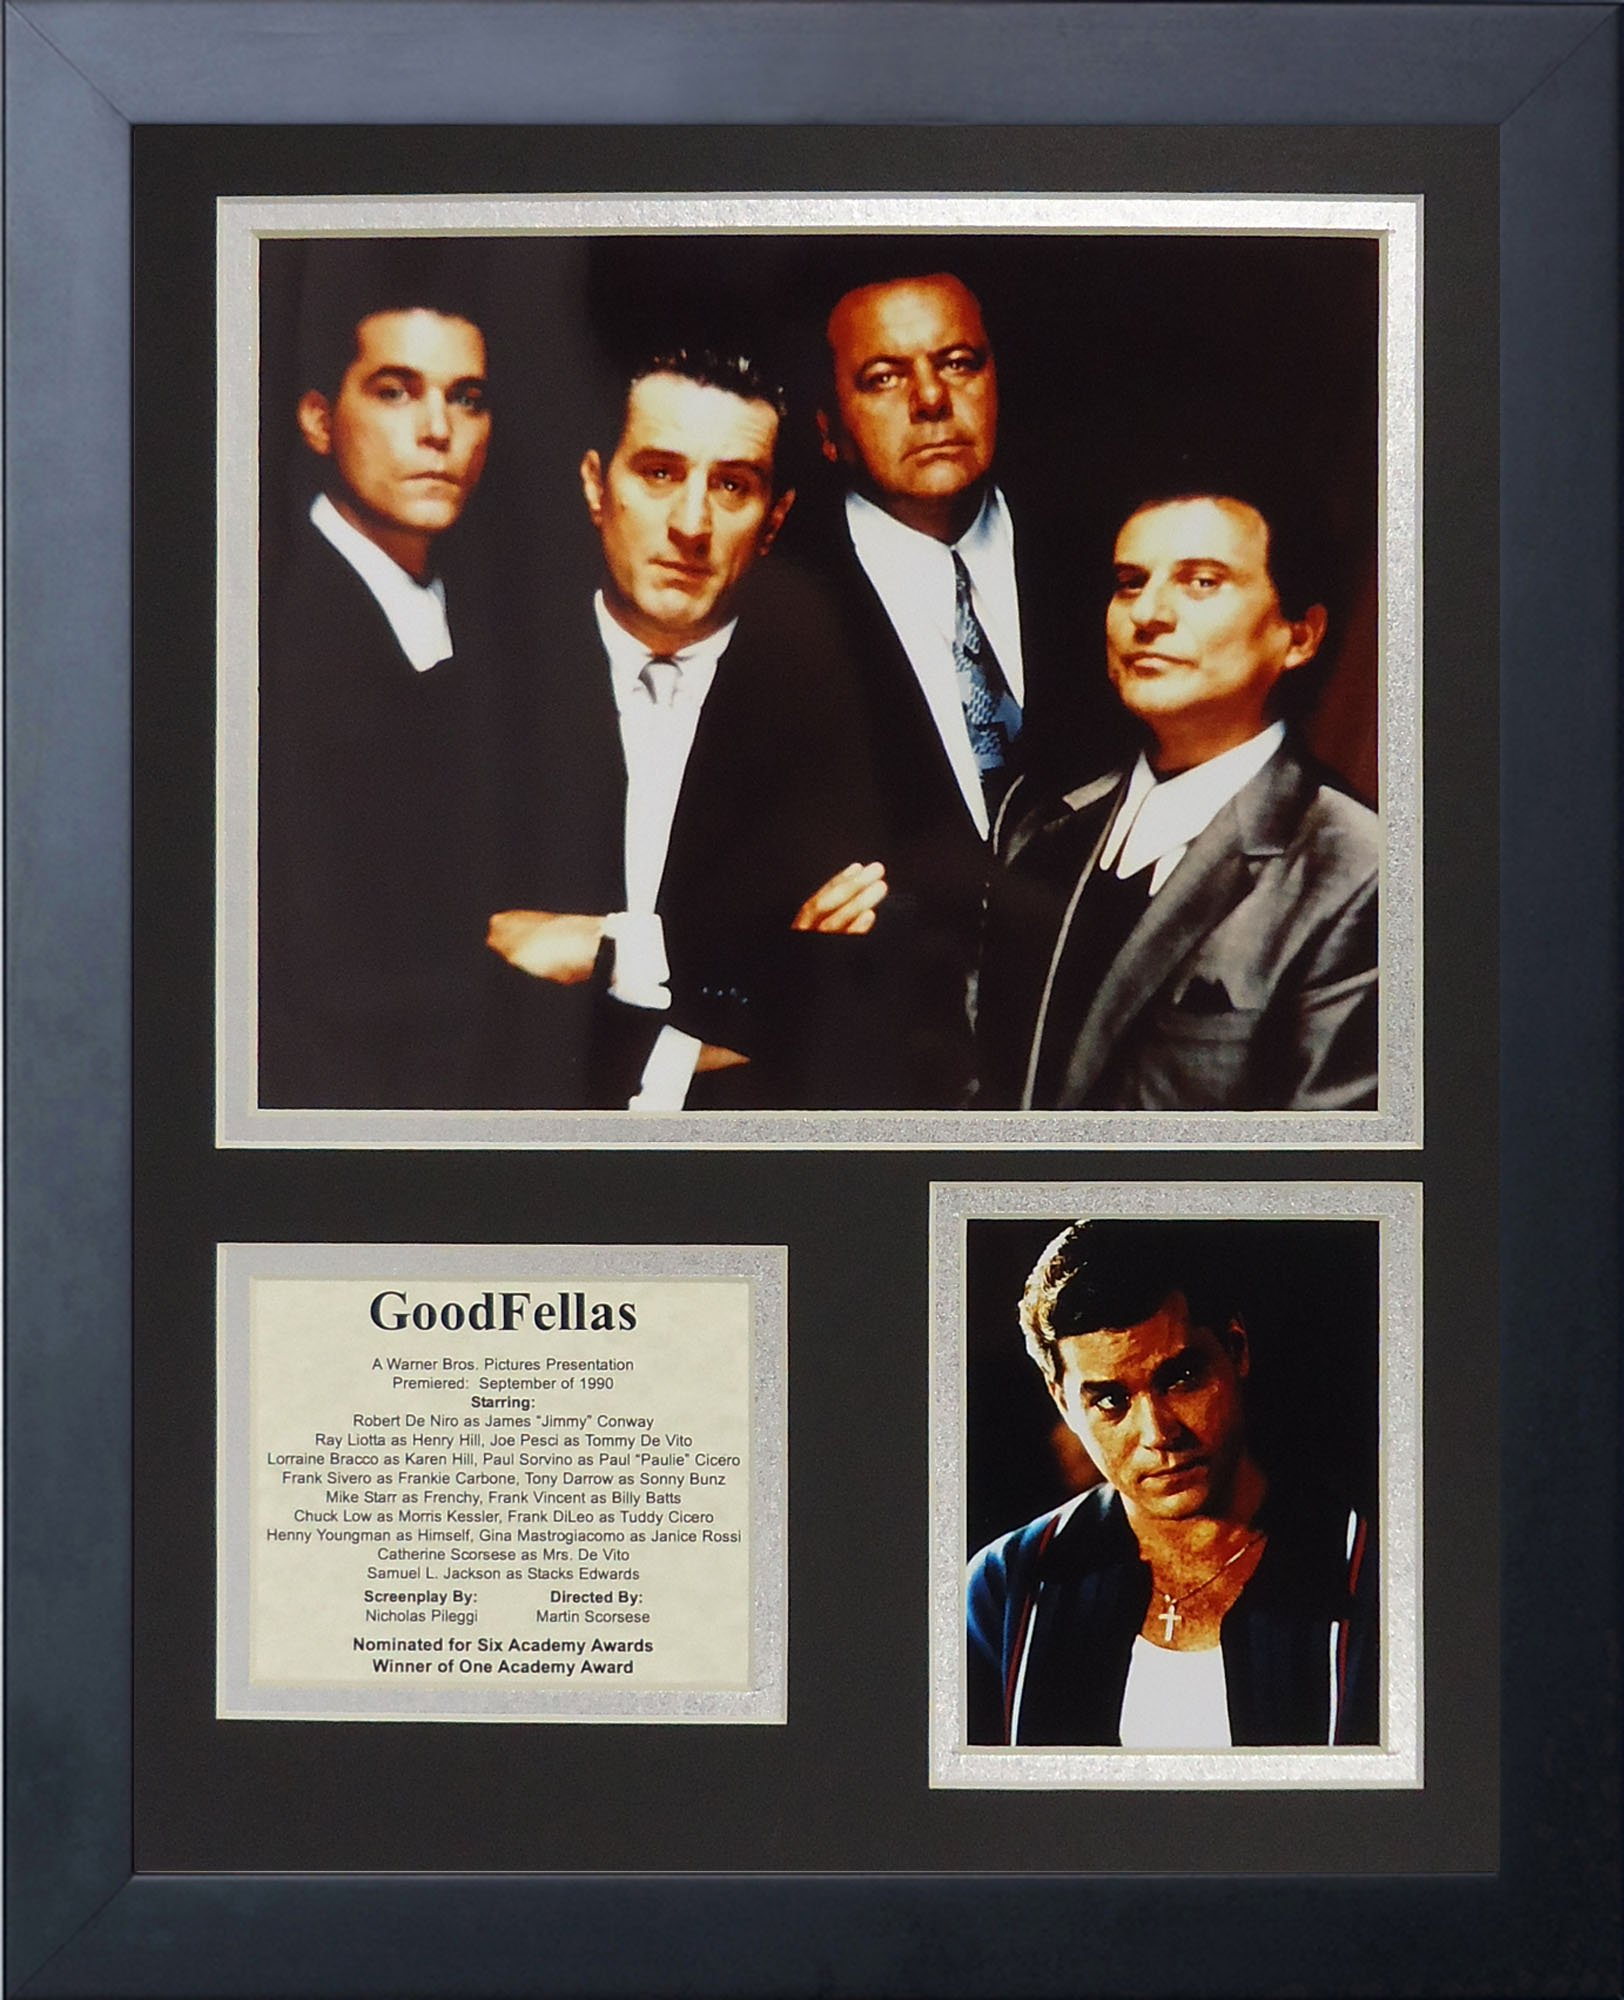 Legends Never Die Goodfellas Framed Photo Collage, 11 by 14-Inch